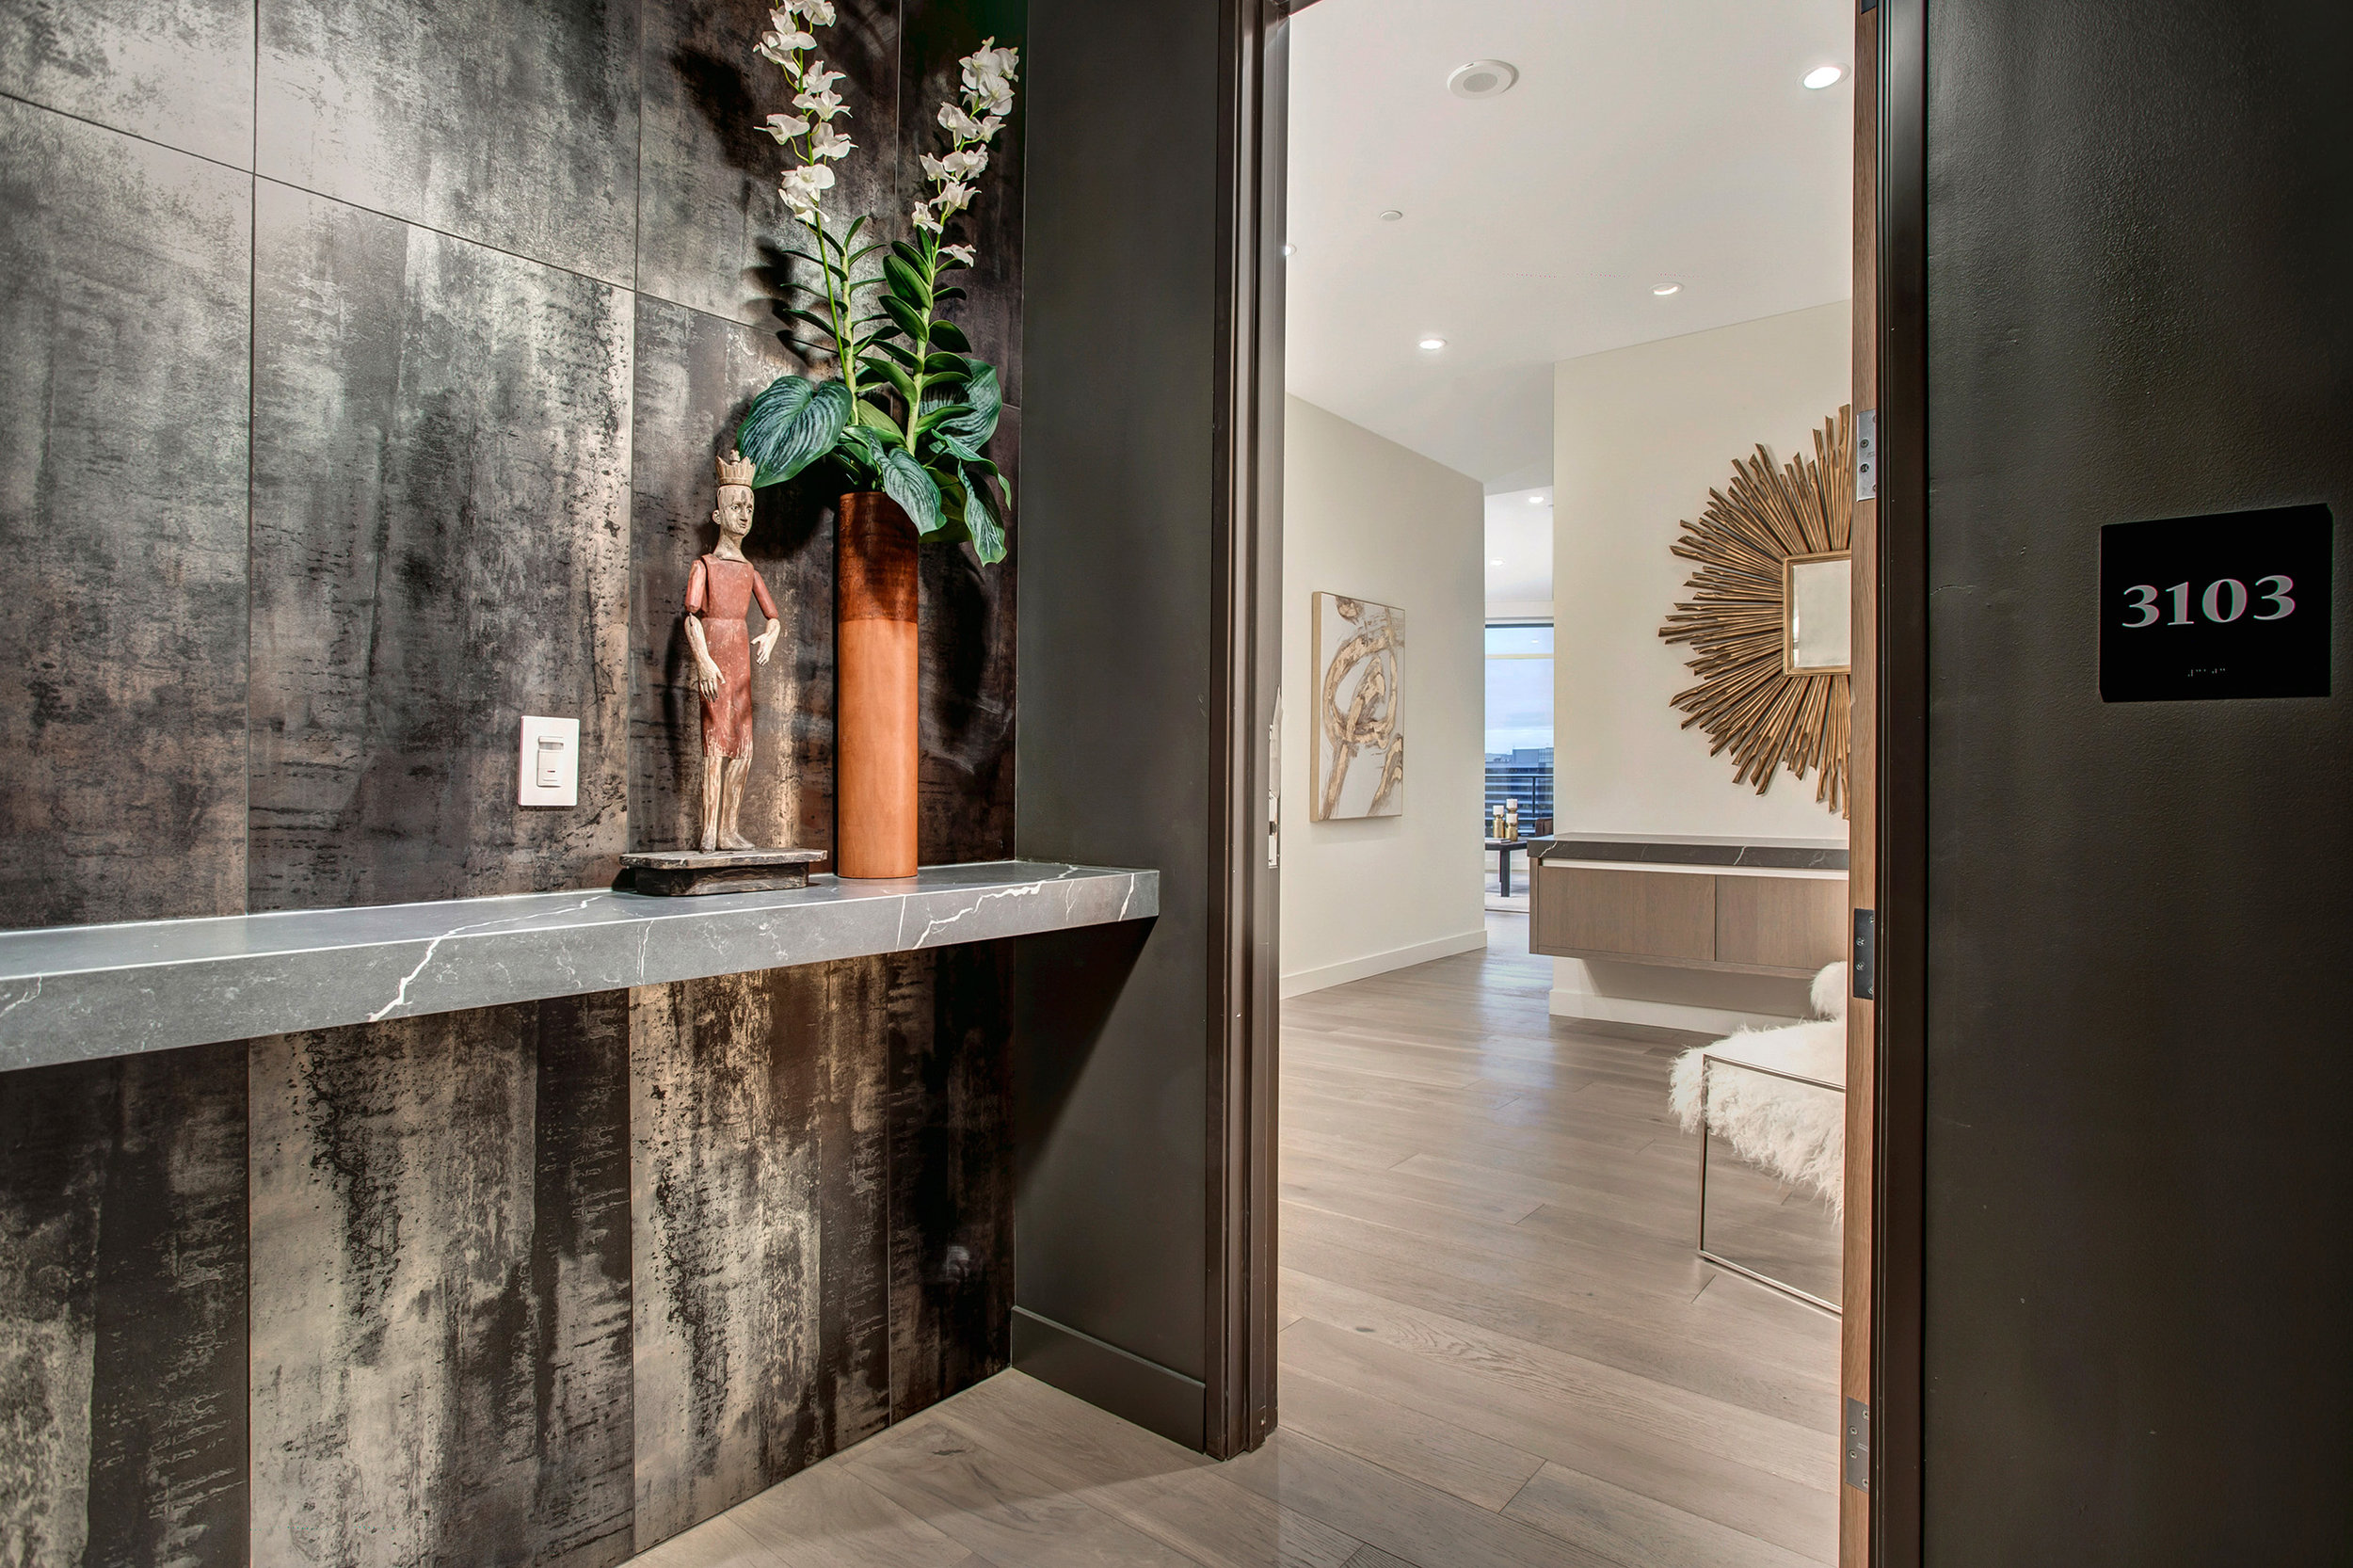 The luxury of a private vestibule to greet you and guests before entering the penthouse.